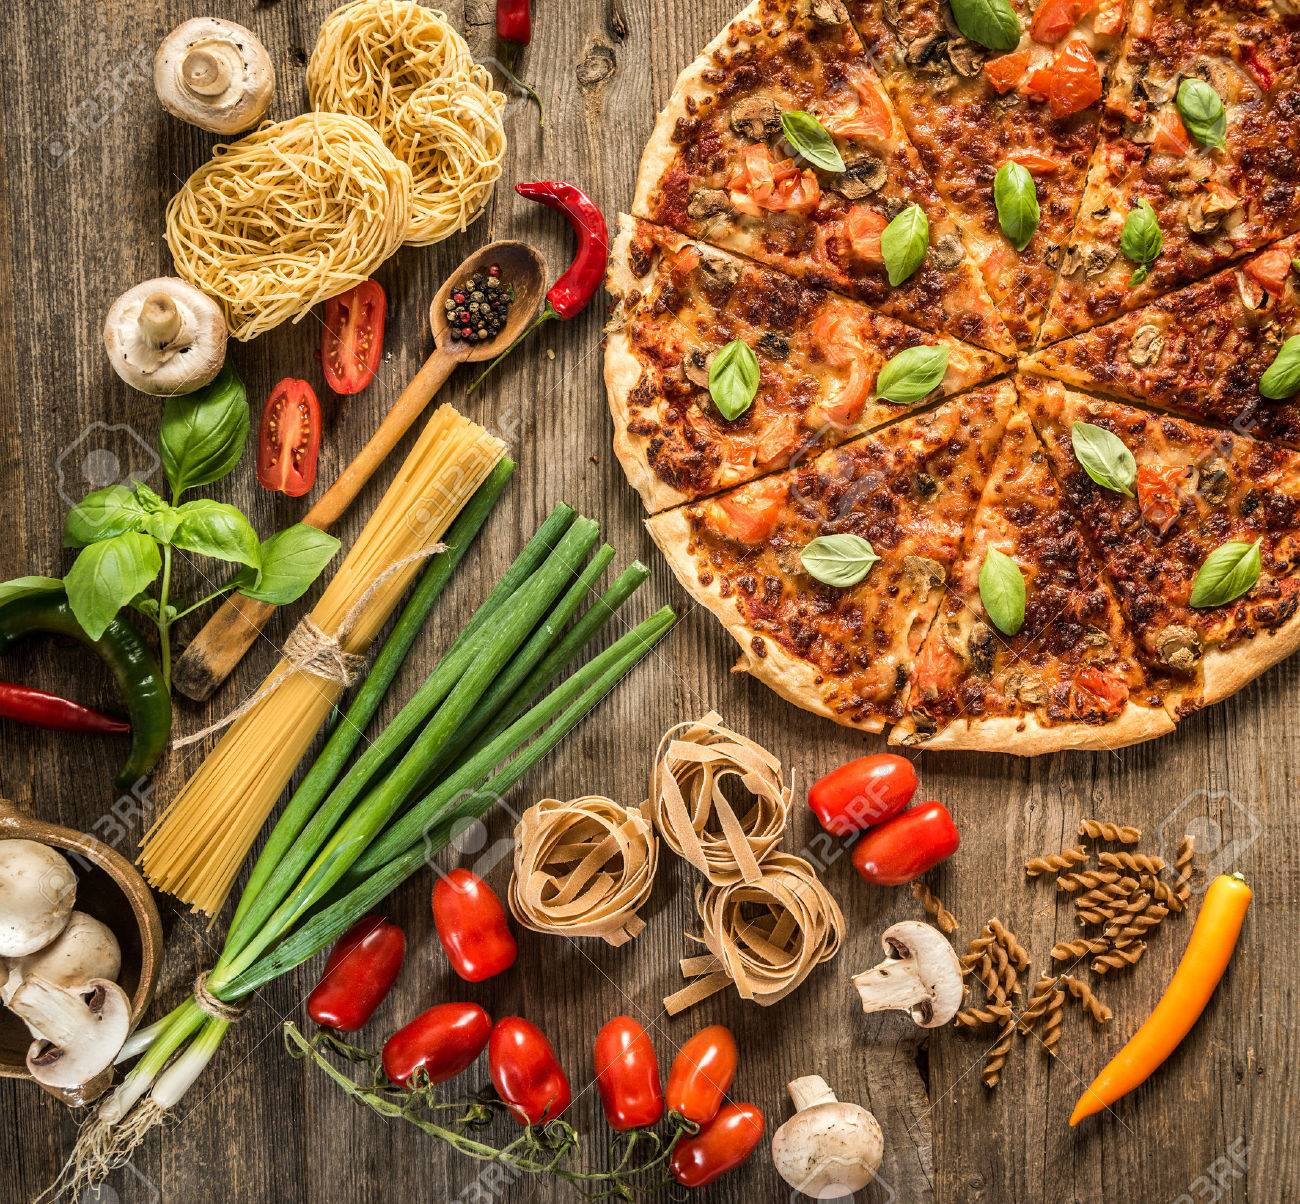 Italian food background with pizza, raw pasta and vegetables on wooden table - 41510281